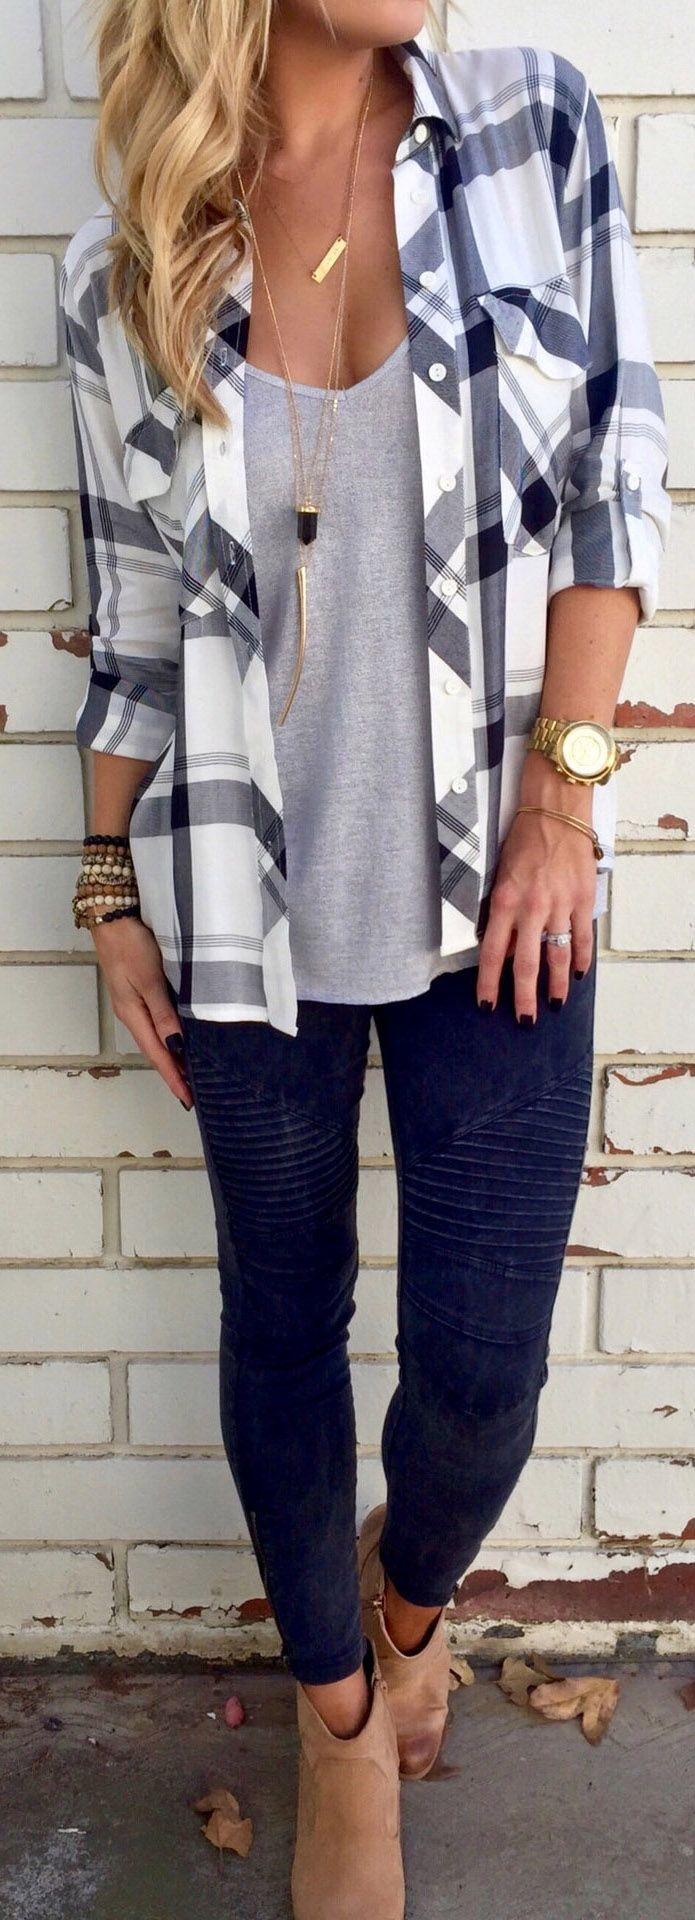 Casual flannel outfits  Plaid Chest Pocket Long Sleeve Shirt  Plaid Navy and Clothes